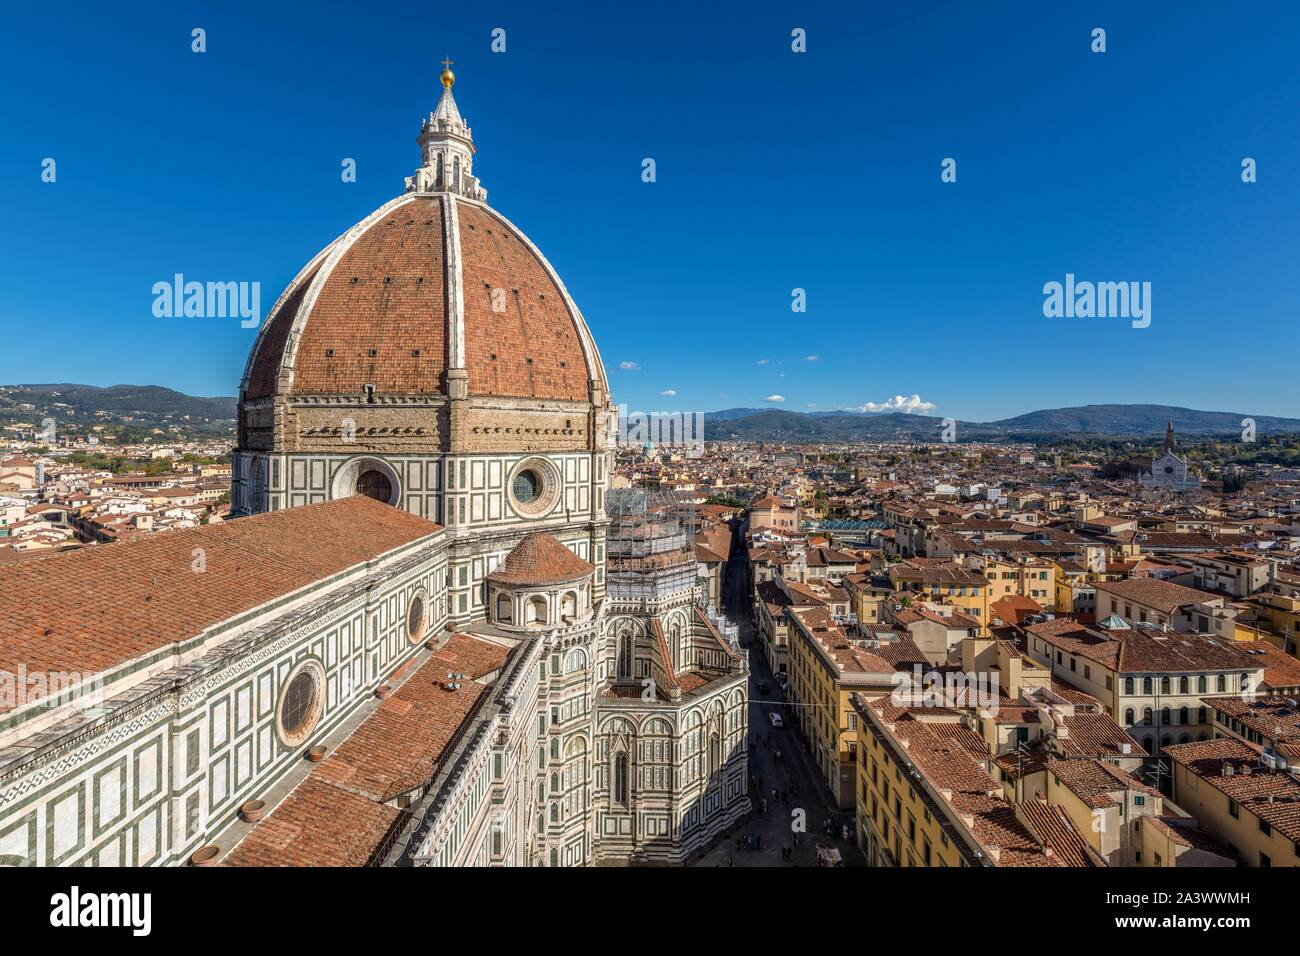 DOME OF THE SANTA MARIA DEL FIORE CATHEDRAL ABOVE THE OLD CITY OF FLORENCE, TUSCANY, ITALY Stock Photo